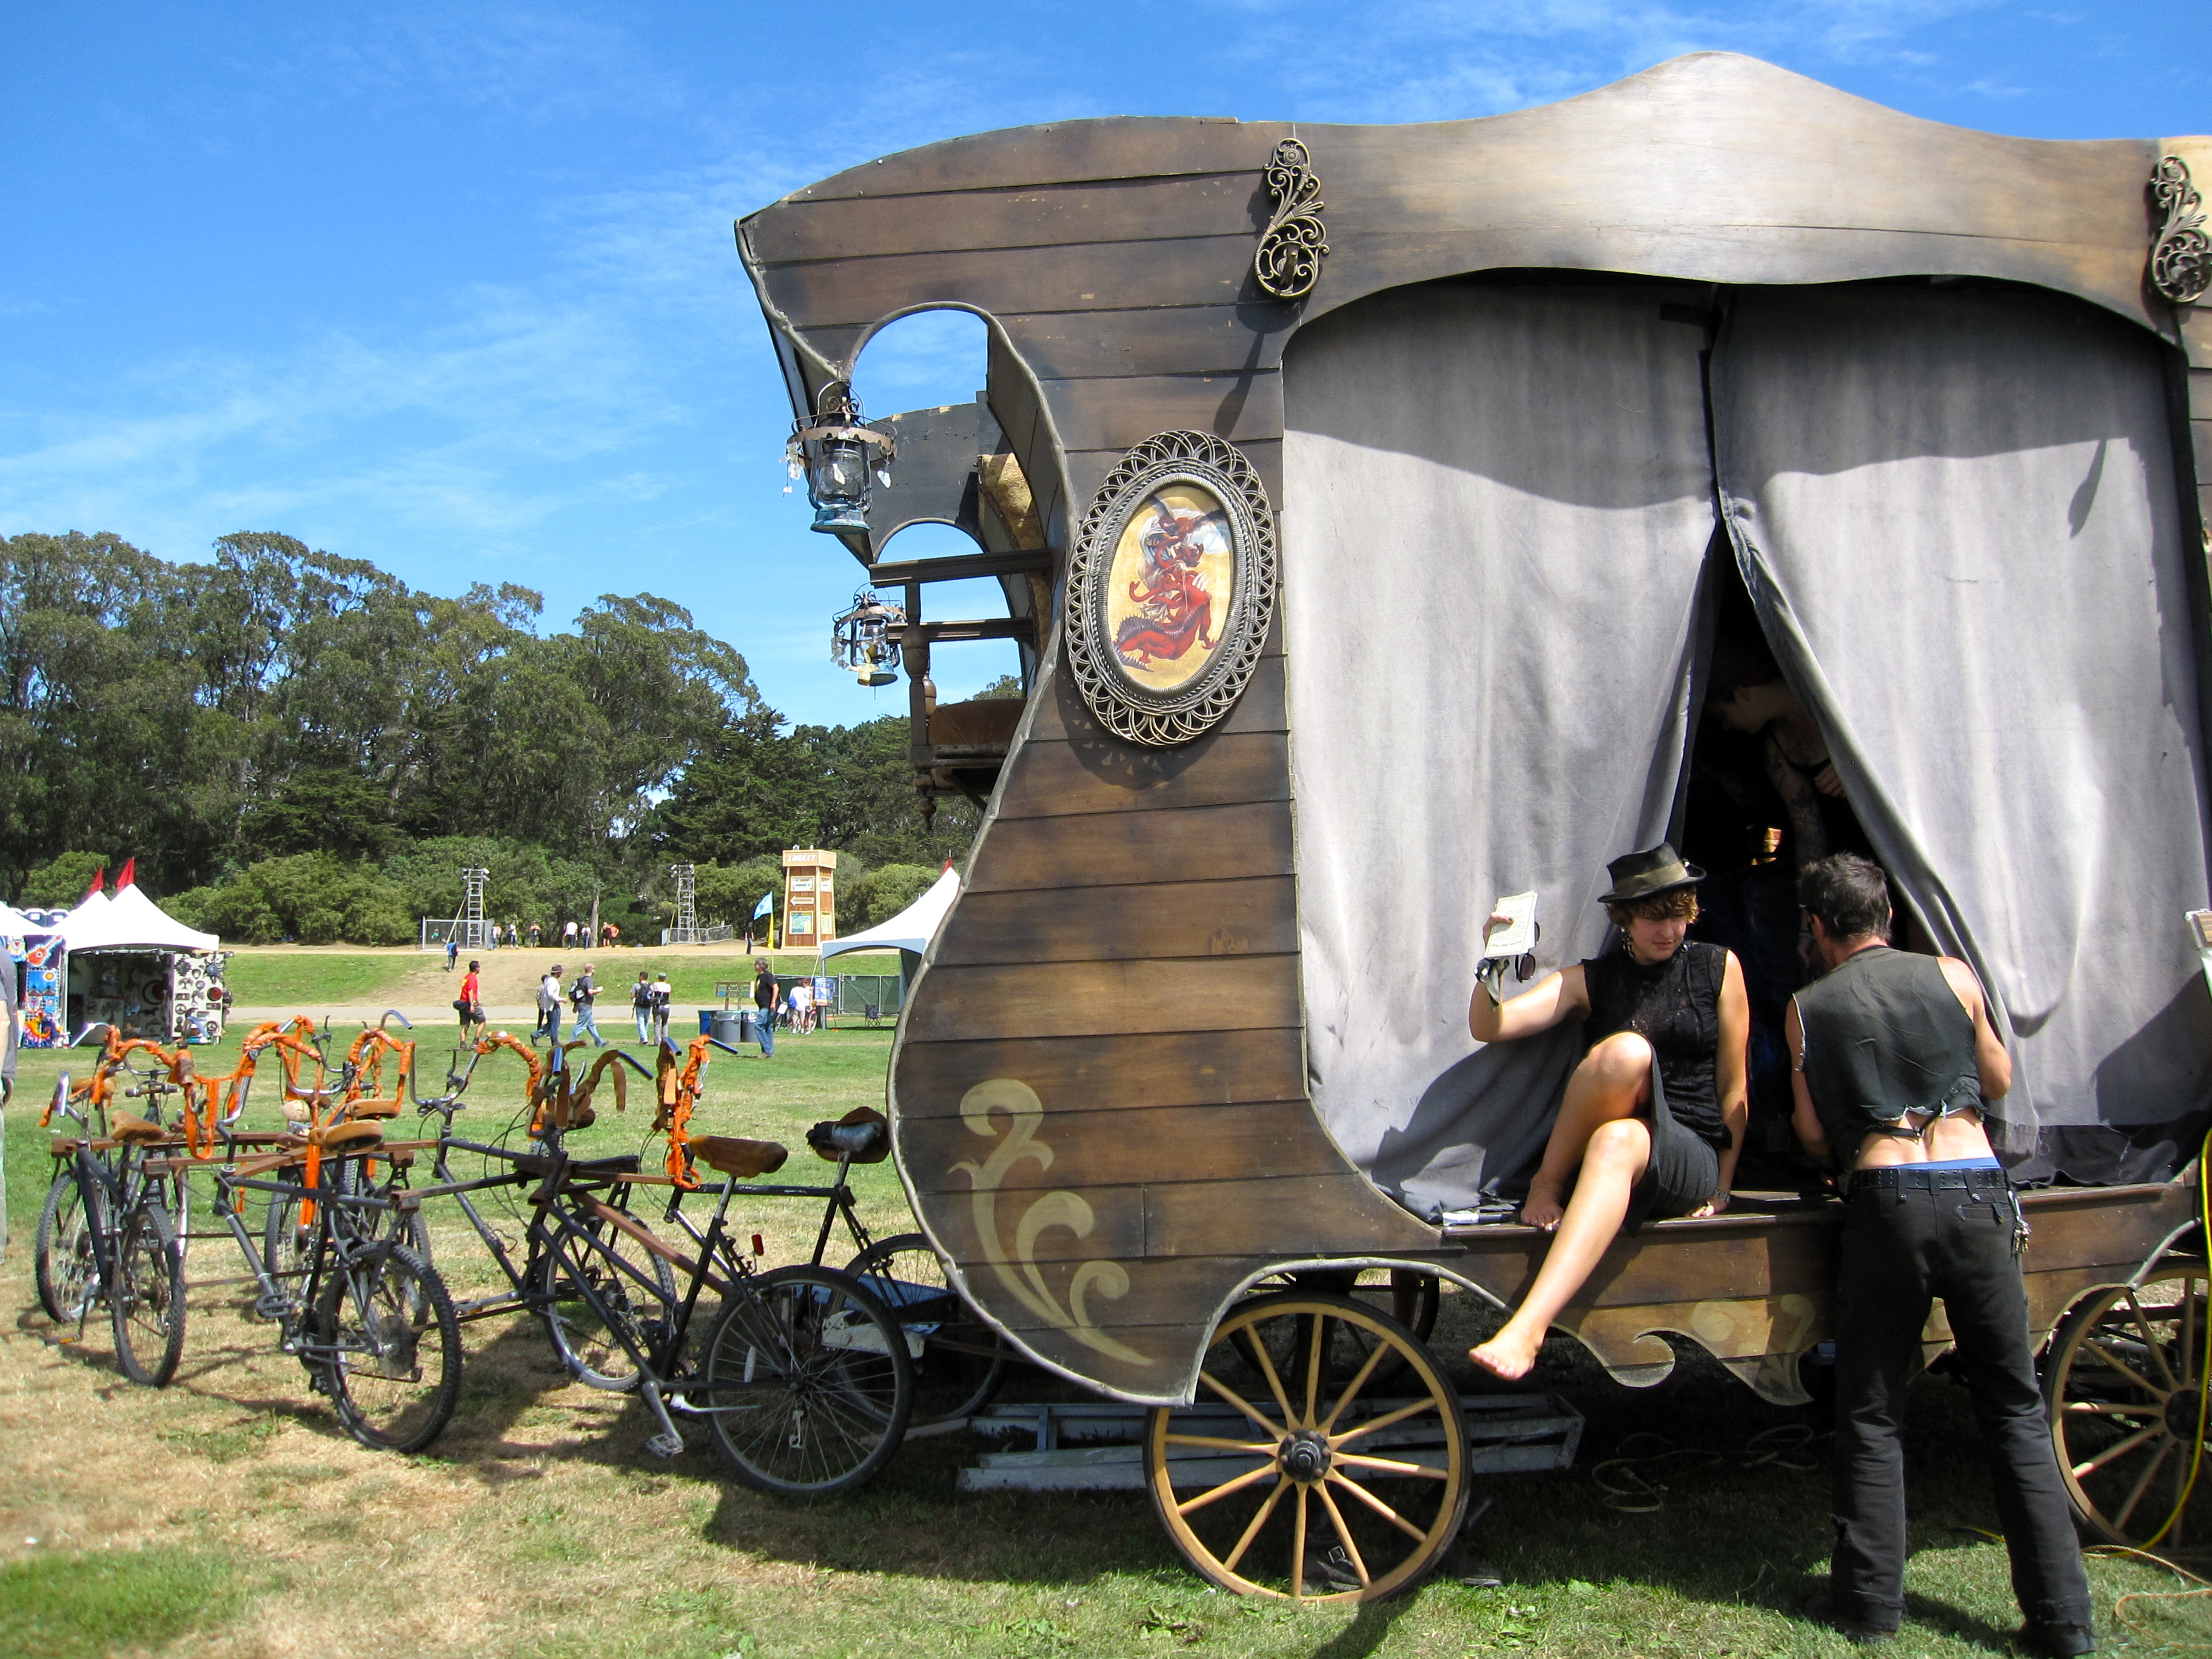 Human-powered-puppet-show-wagony-thingy